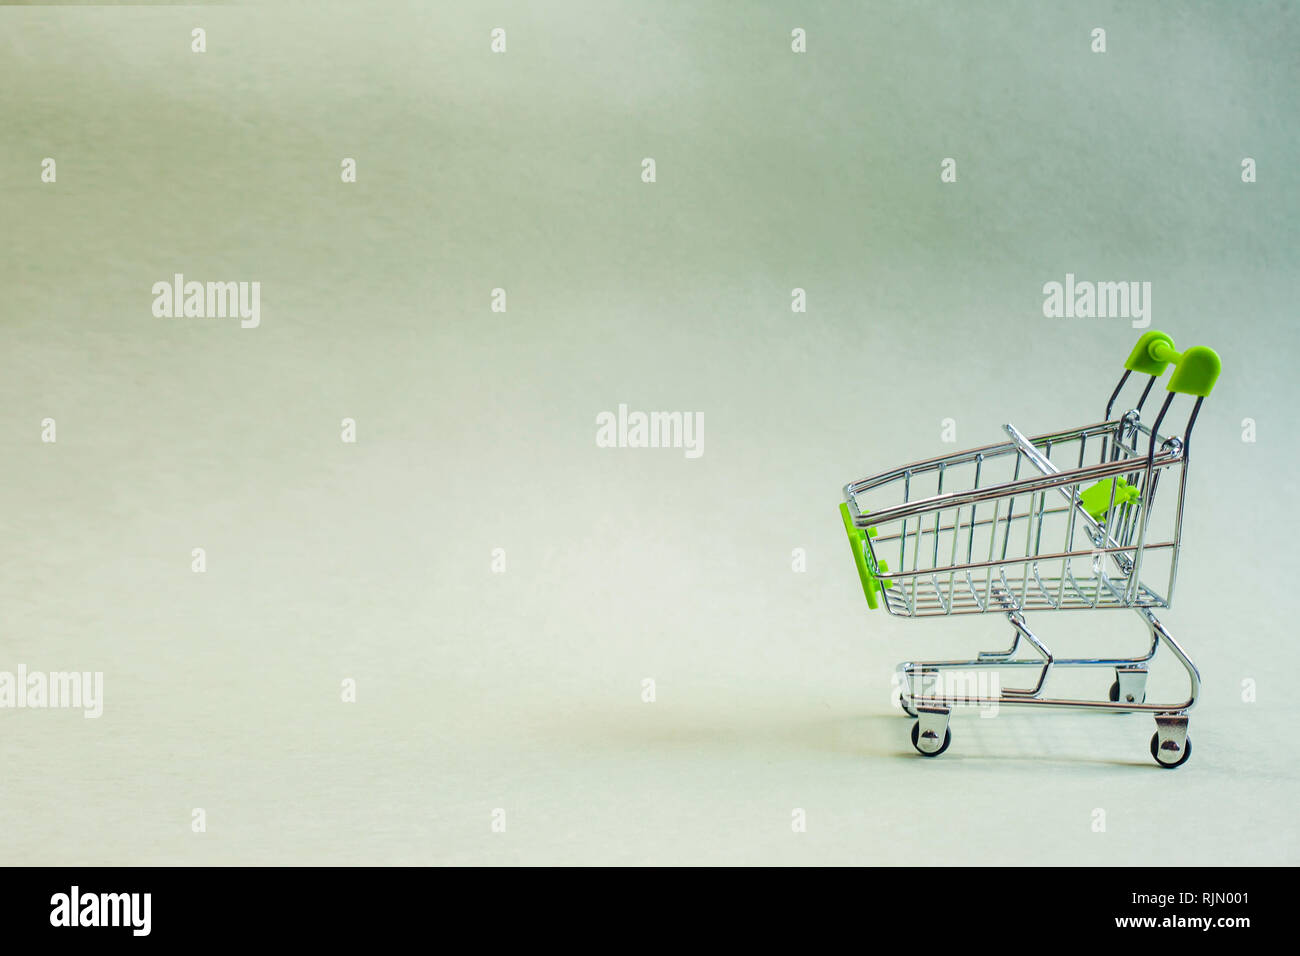 A green mini shopping cart on bright green paper background, blank for copy space. - Stock Image